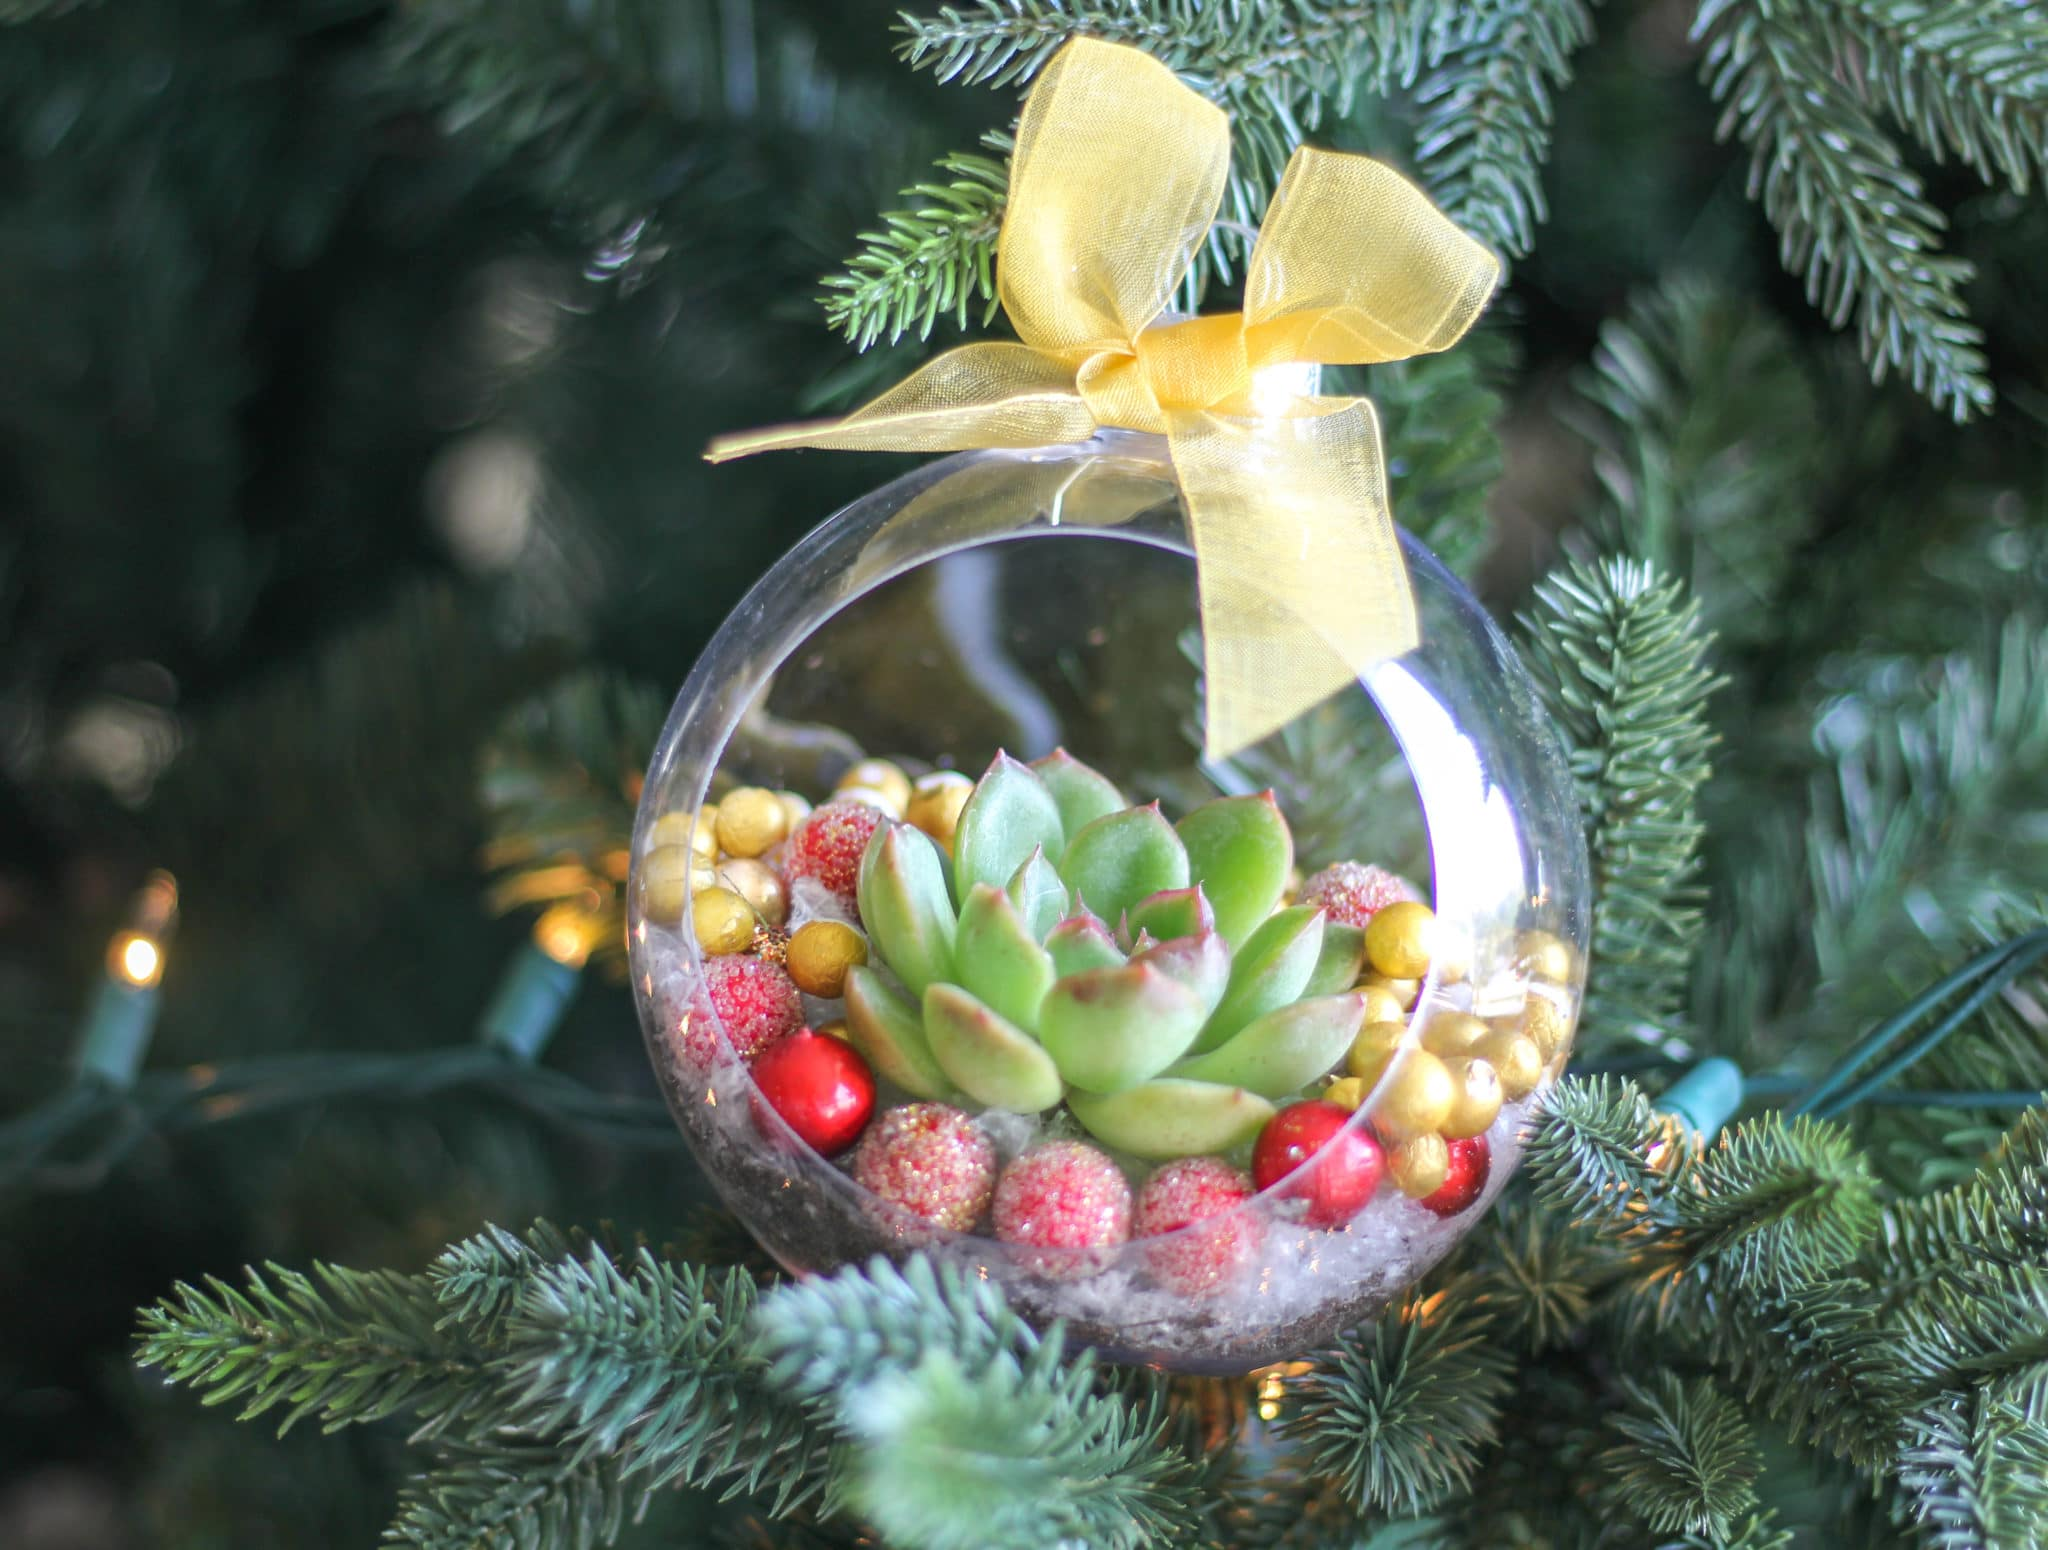 Diy Christmas Ornaments With Live Succulents Natalie Linda